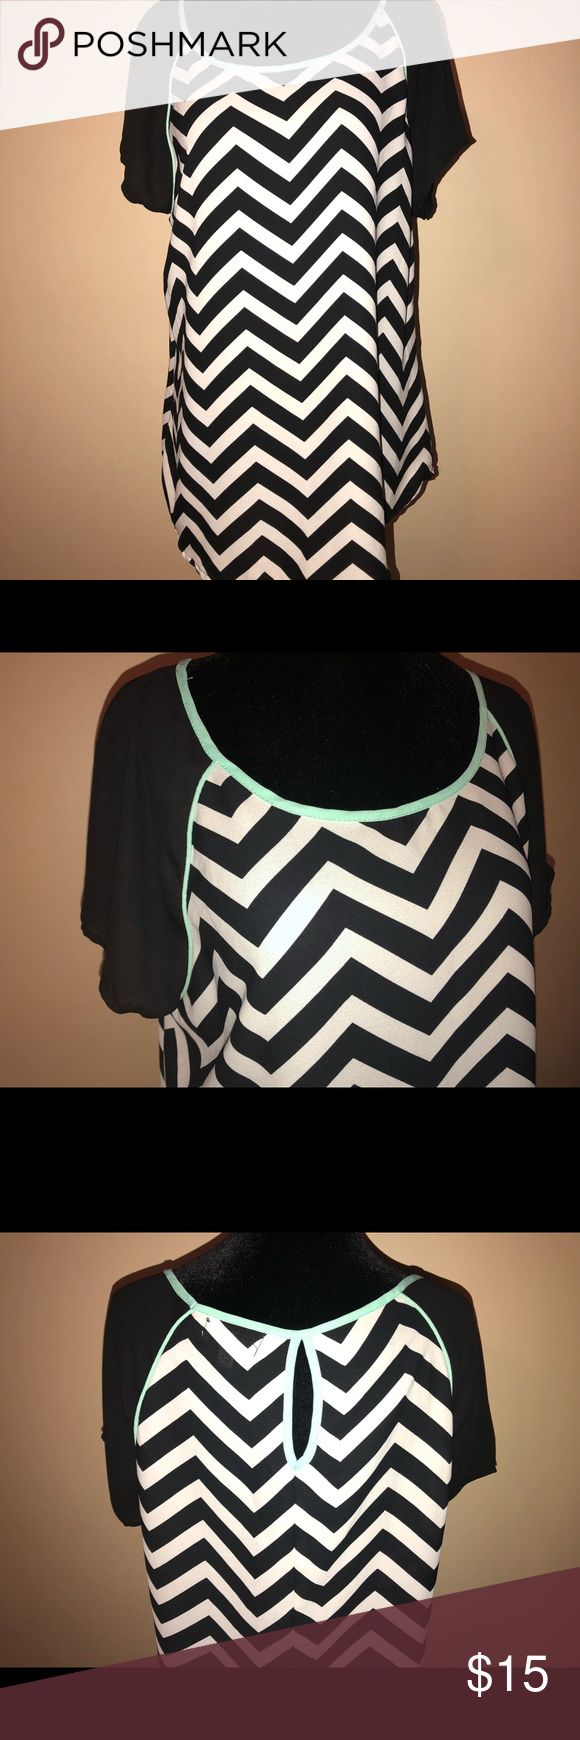 Tunic Chevron Blouse Large Tunic size large new condition. Has mint colored detail around neck. So pretty!!! Soulmates Tops Blouses